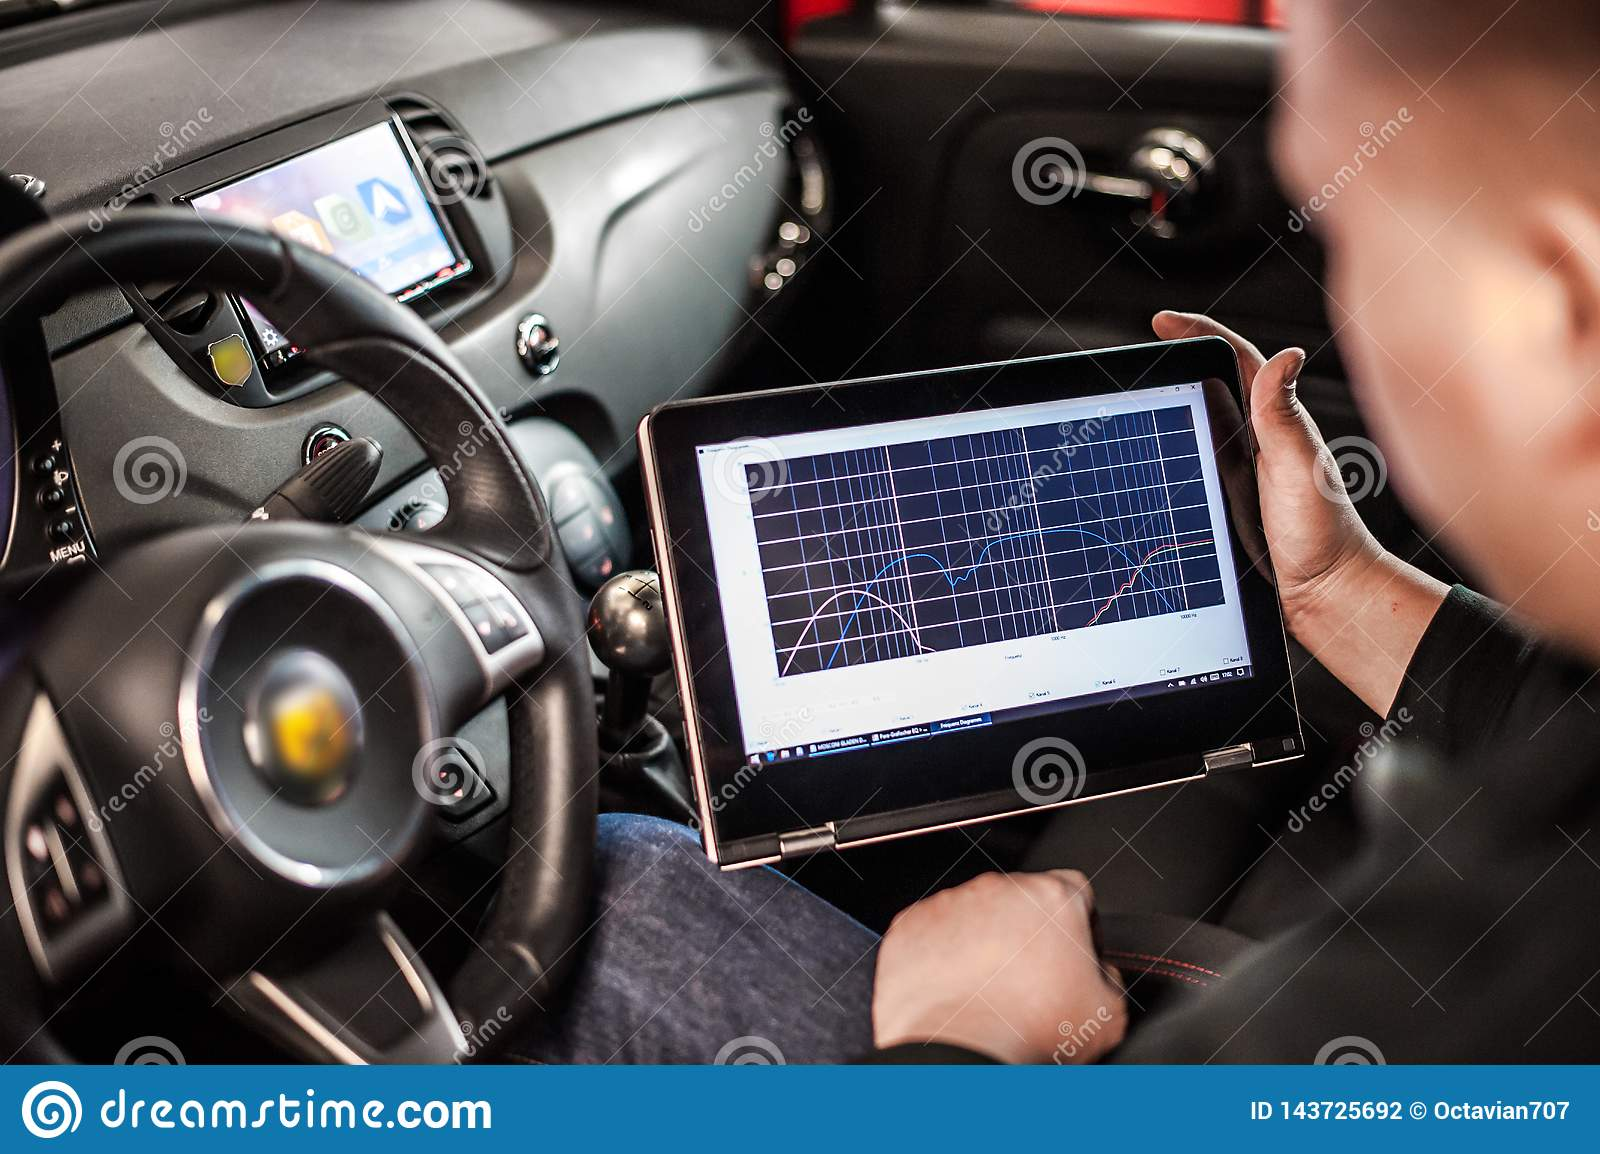 Electric diagnosis device in modern car